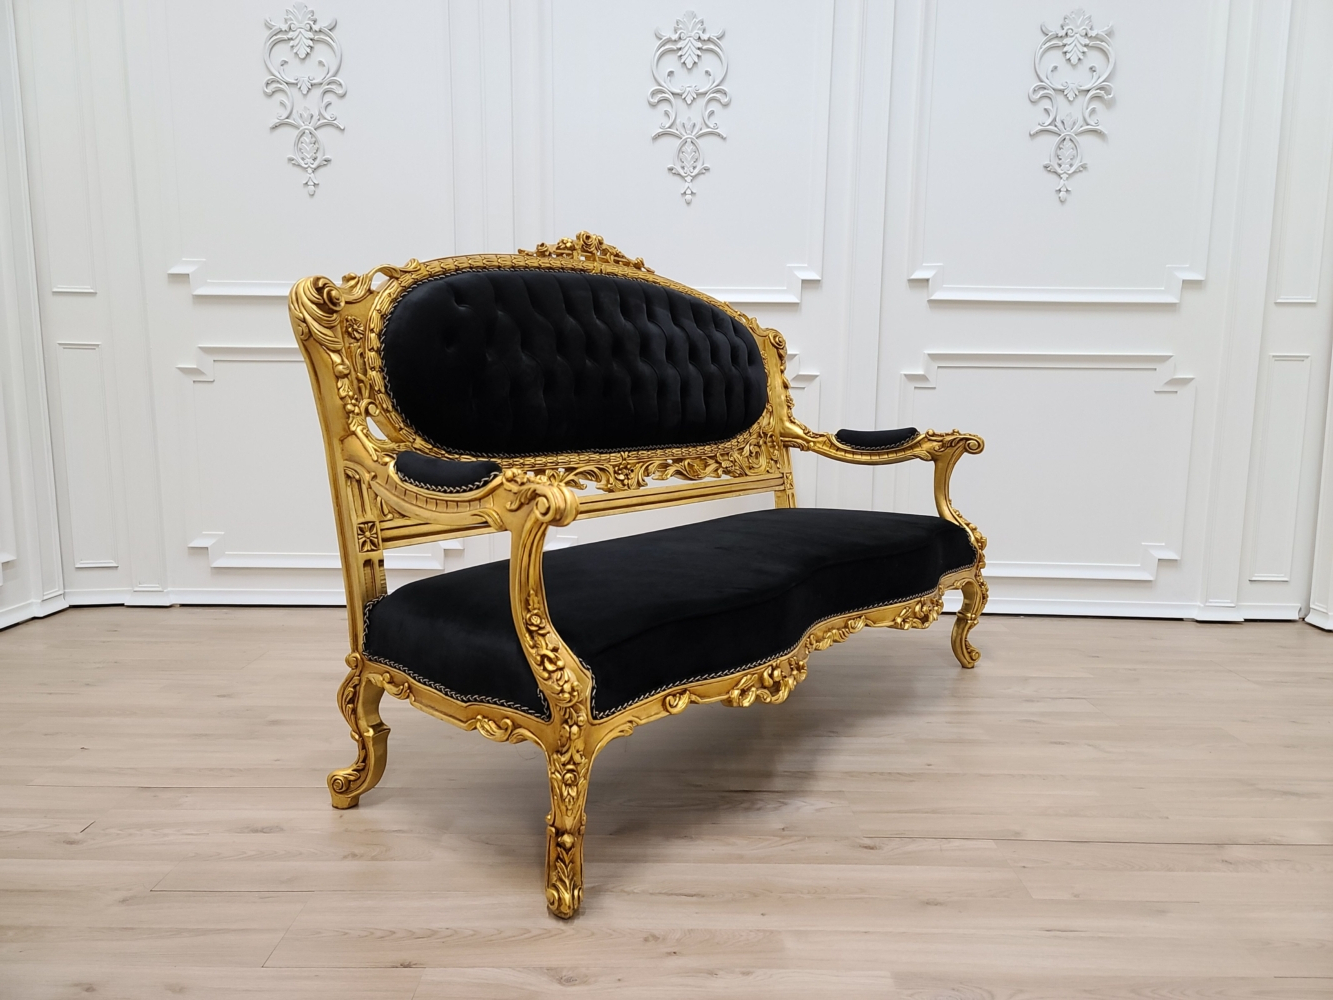 Favorite 4pc French Seamed Sectional Sofas Velvet Black In Victorian Sofa/ Antique Gold Leaf Finish Frame/ Tufted (View 12 of 20)